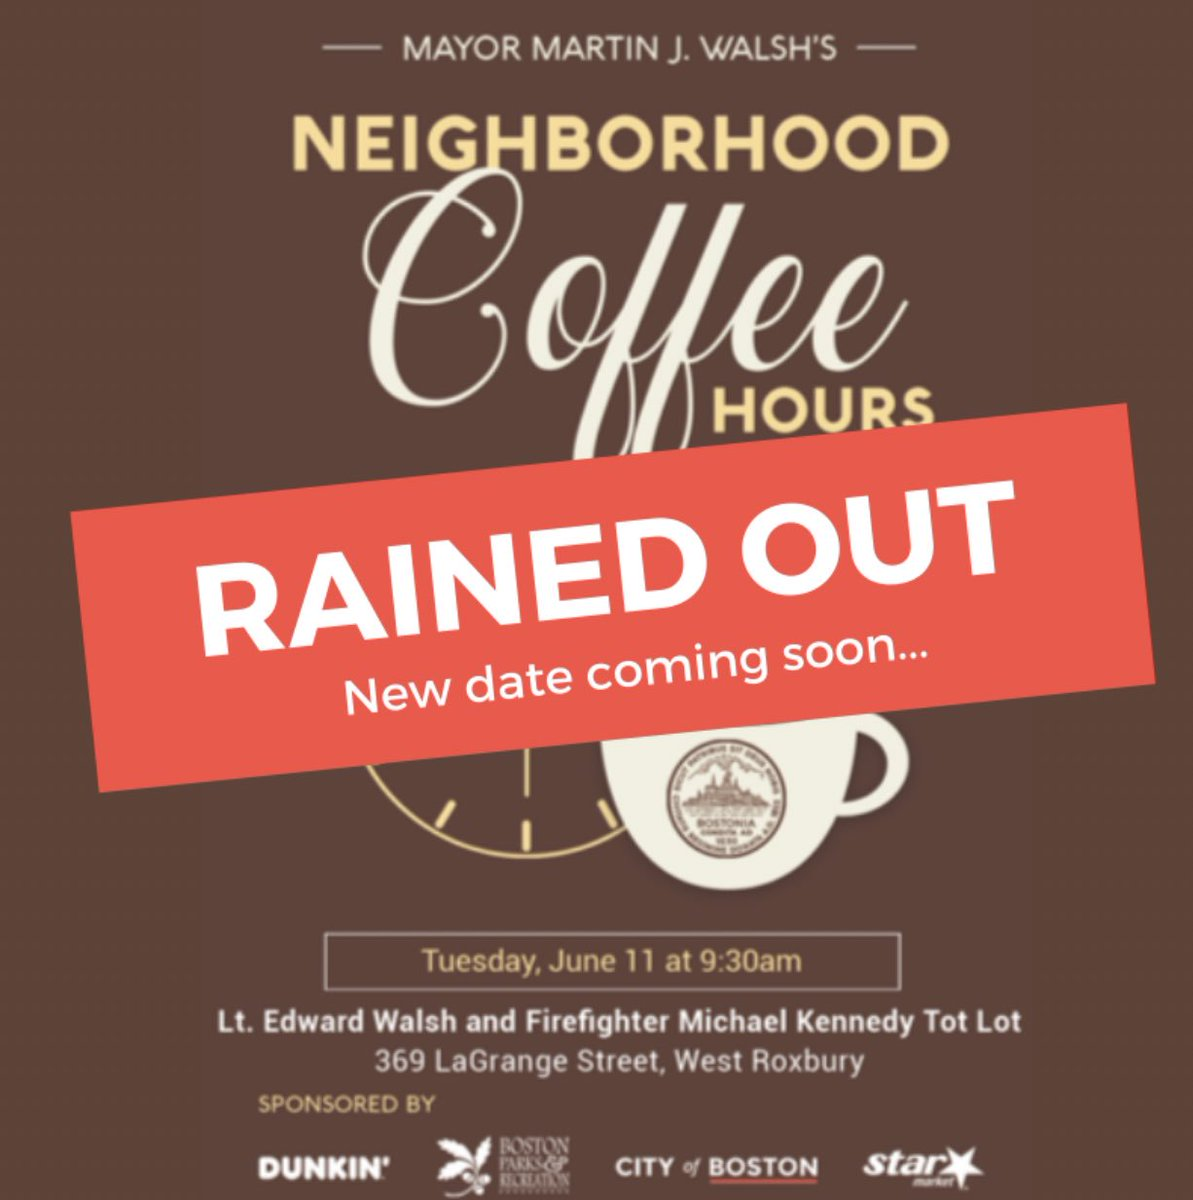 Today's coffee hour in #WestRoxbury is cancelled due to the rain. We will be touch with a rescheduled date as soon as possible. Thank you for understanding!